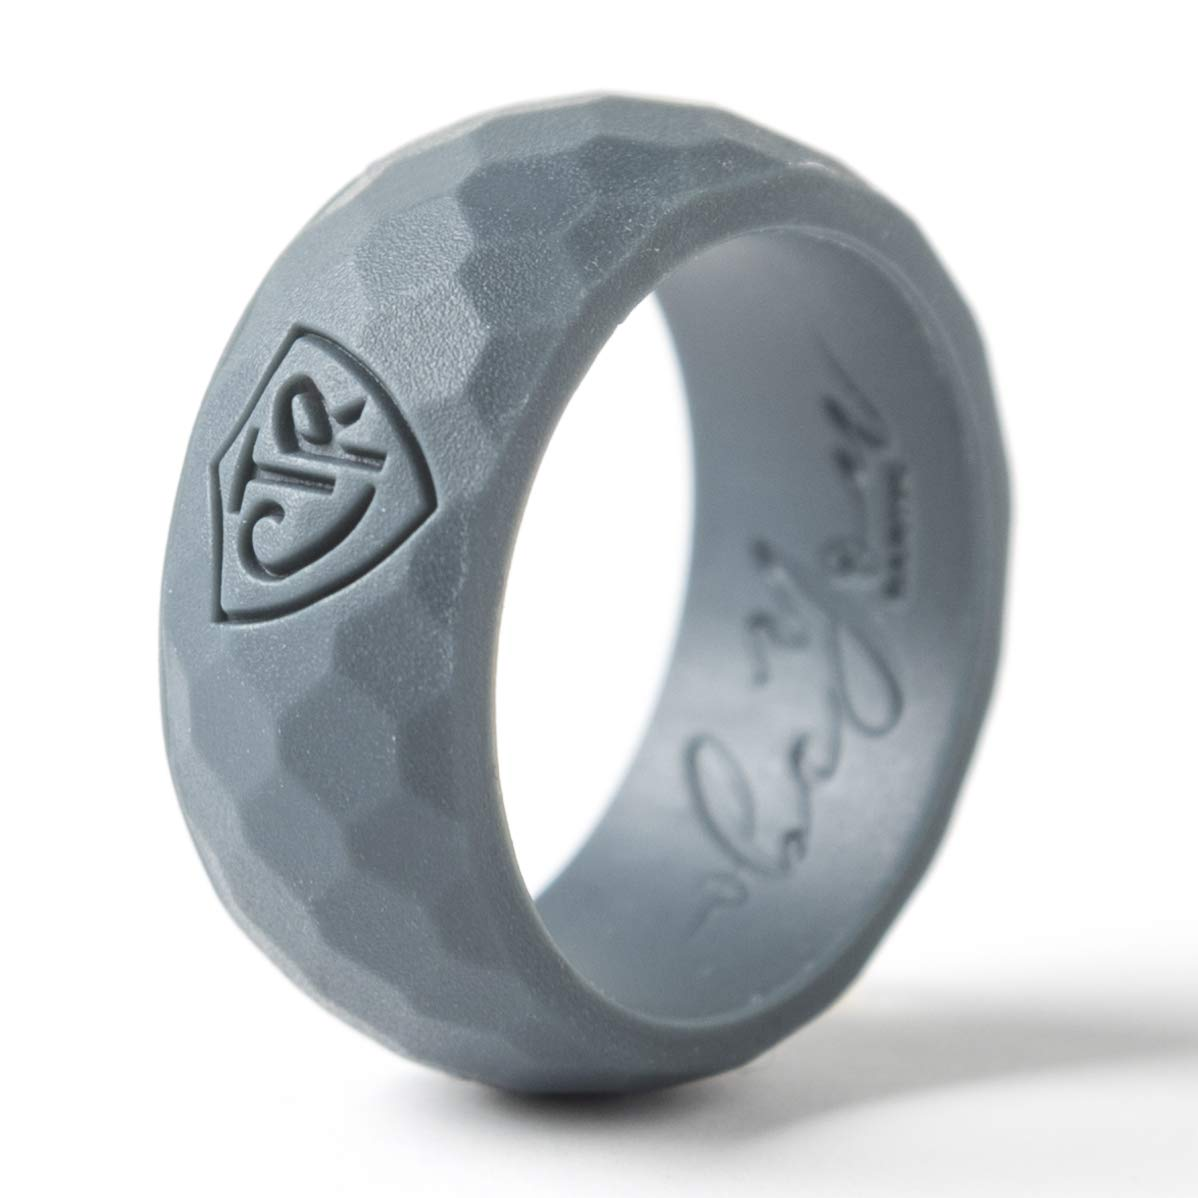 Be You Bands - Men's CTR Silicone Ring (Charcoal Gray, 10)